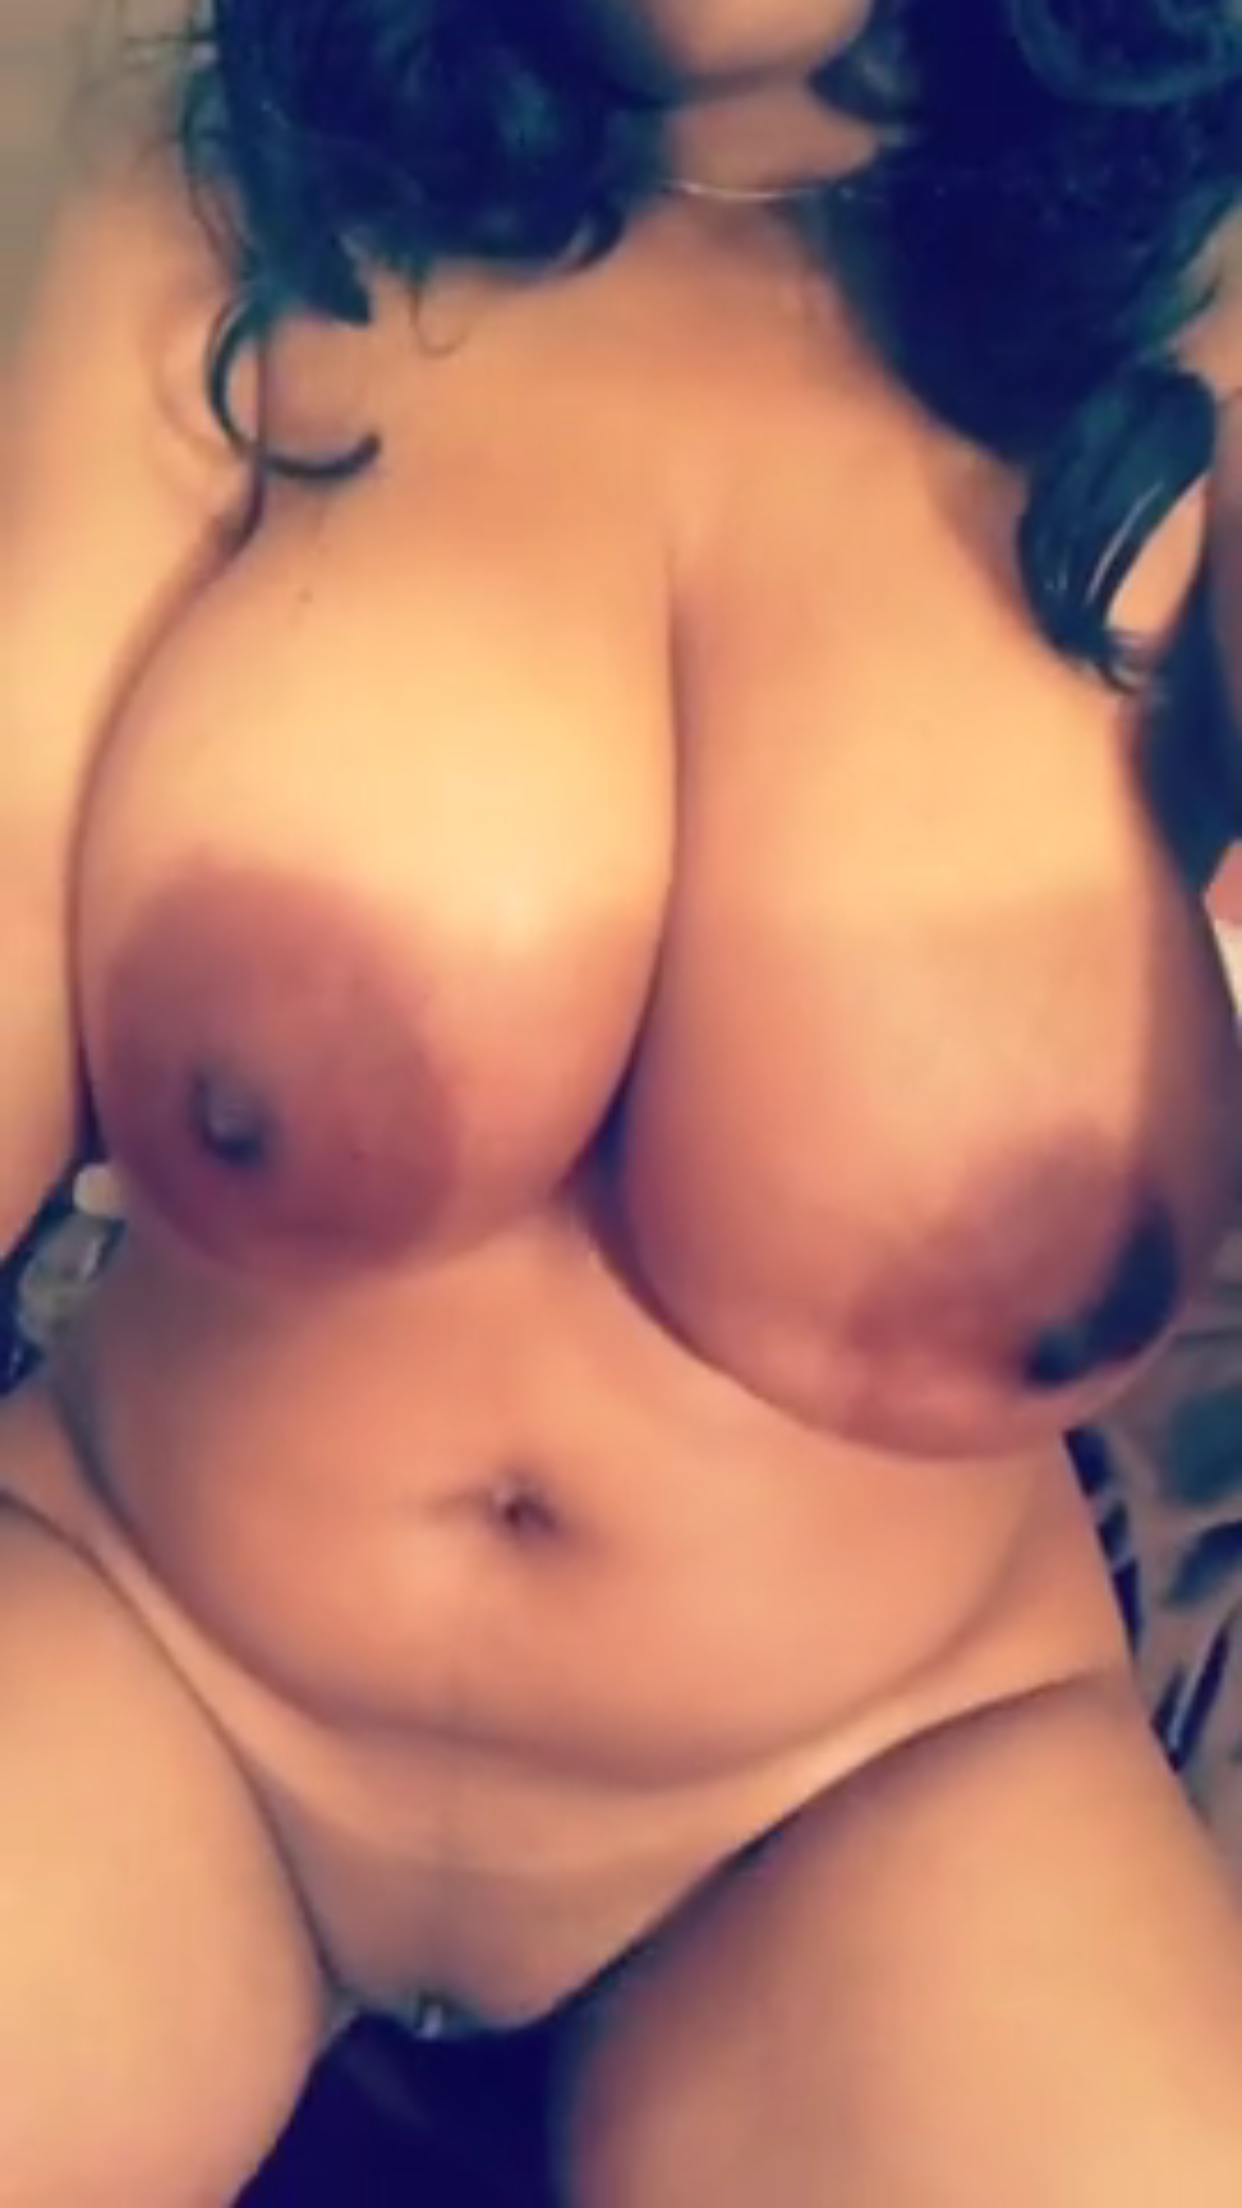 Cute chubby boobs